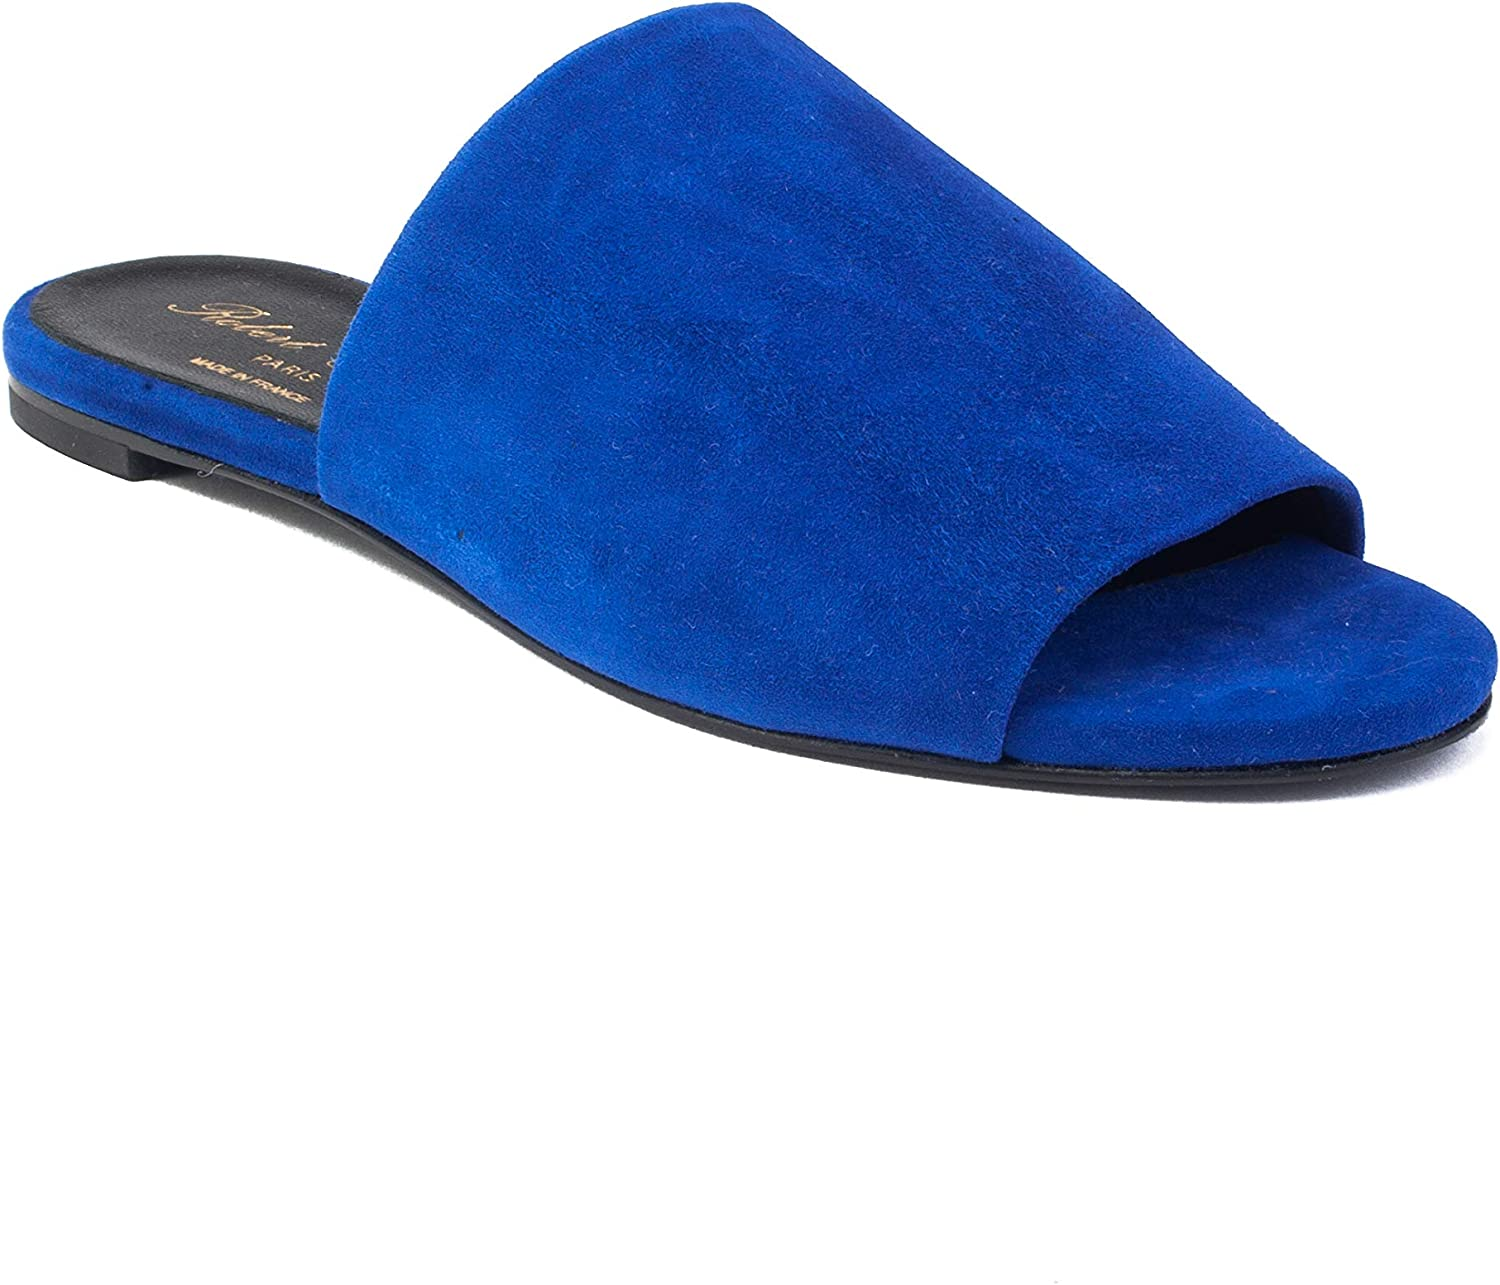 Robert Clergerie Women's Suede Gigy Slide Sandal shoes bluee